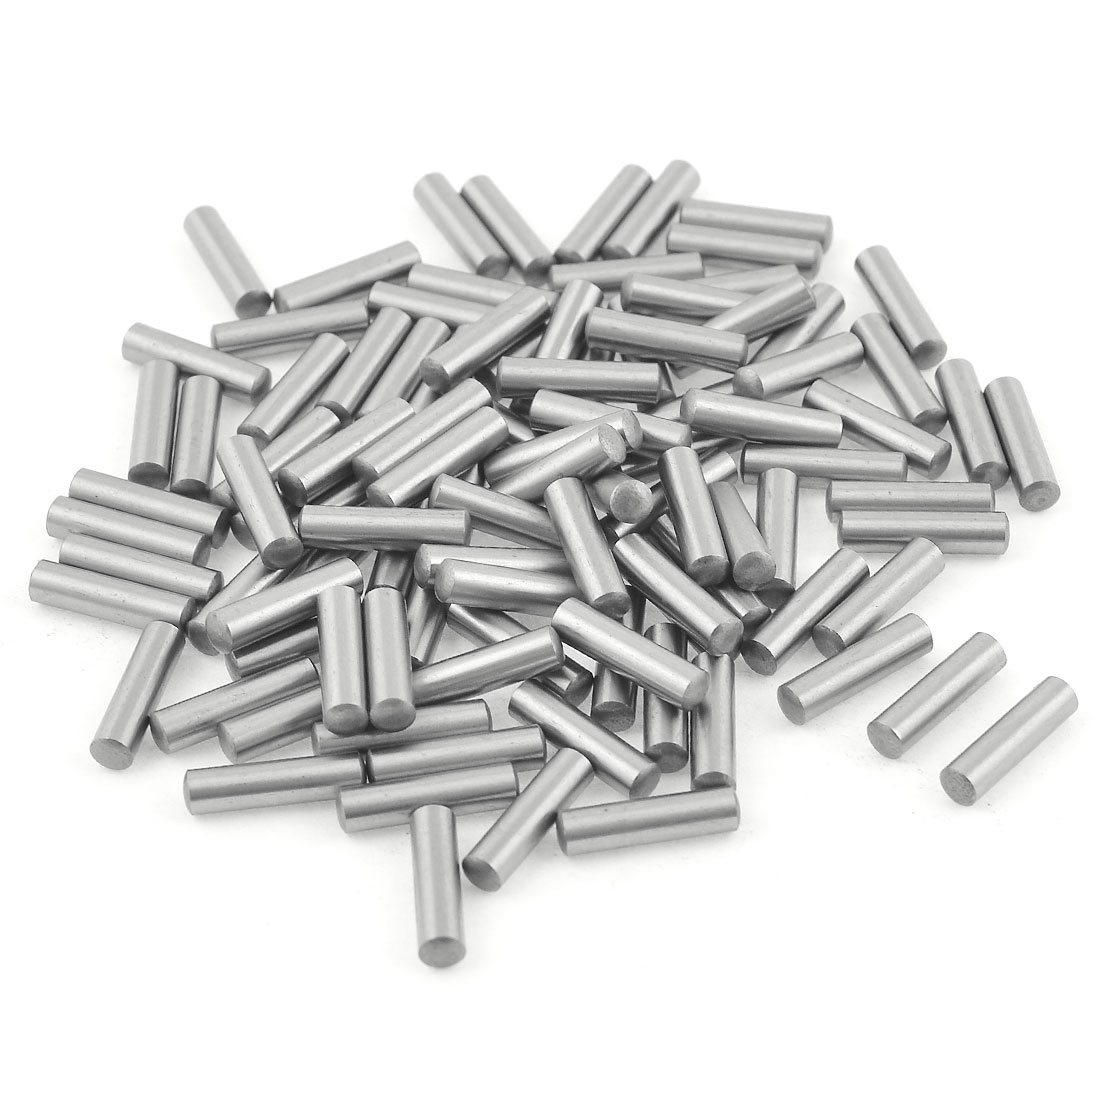 100 Pcs 3.25mm x 15.8mm Parallel Dowel Pins Fasten Elements